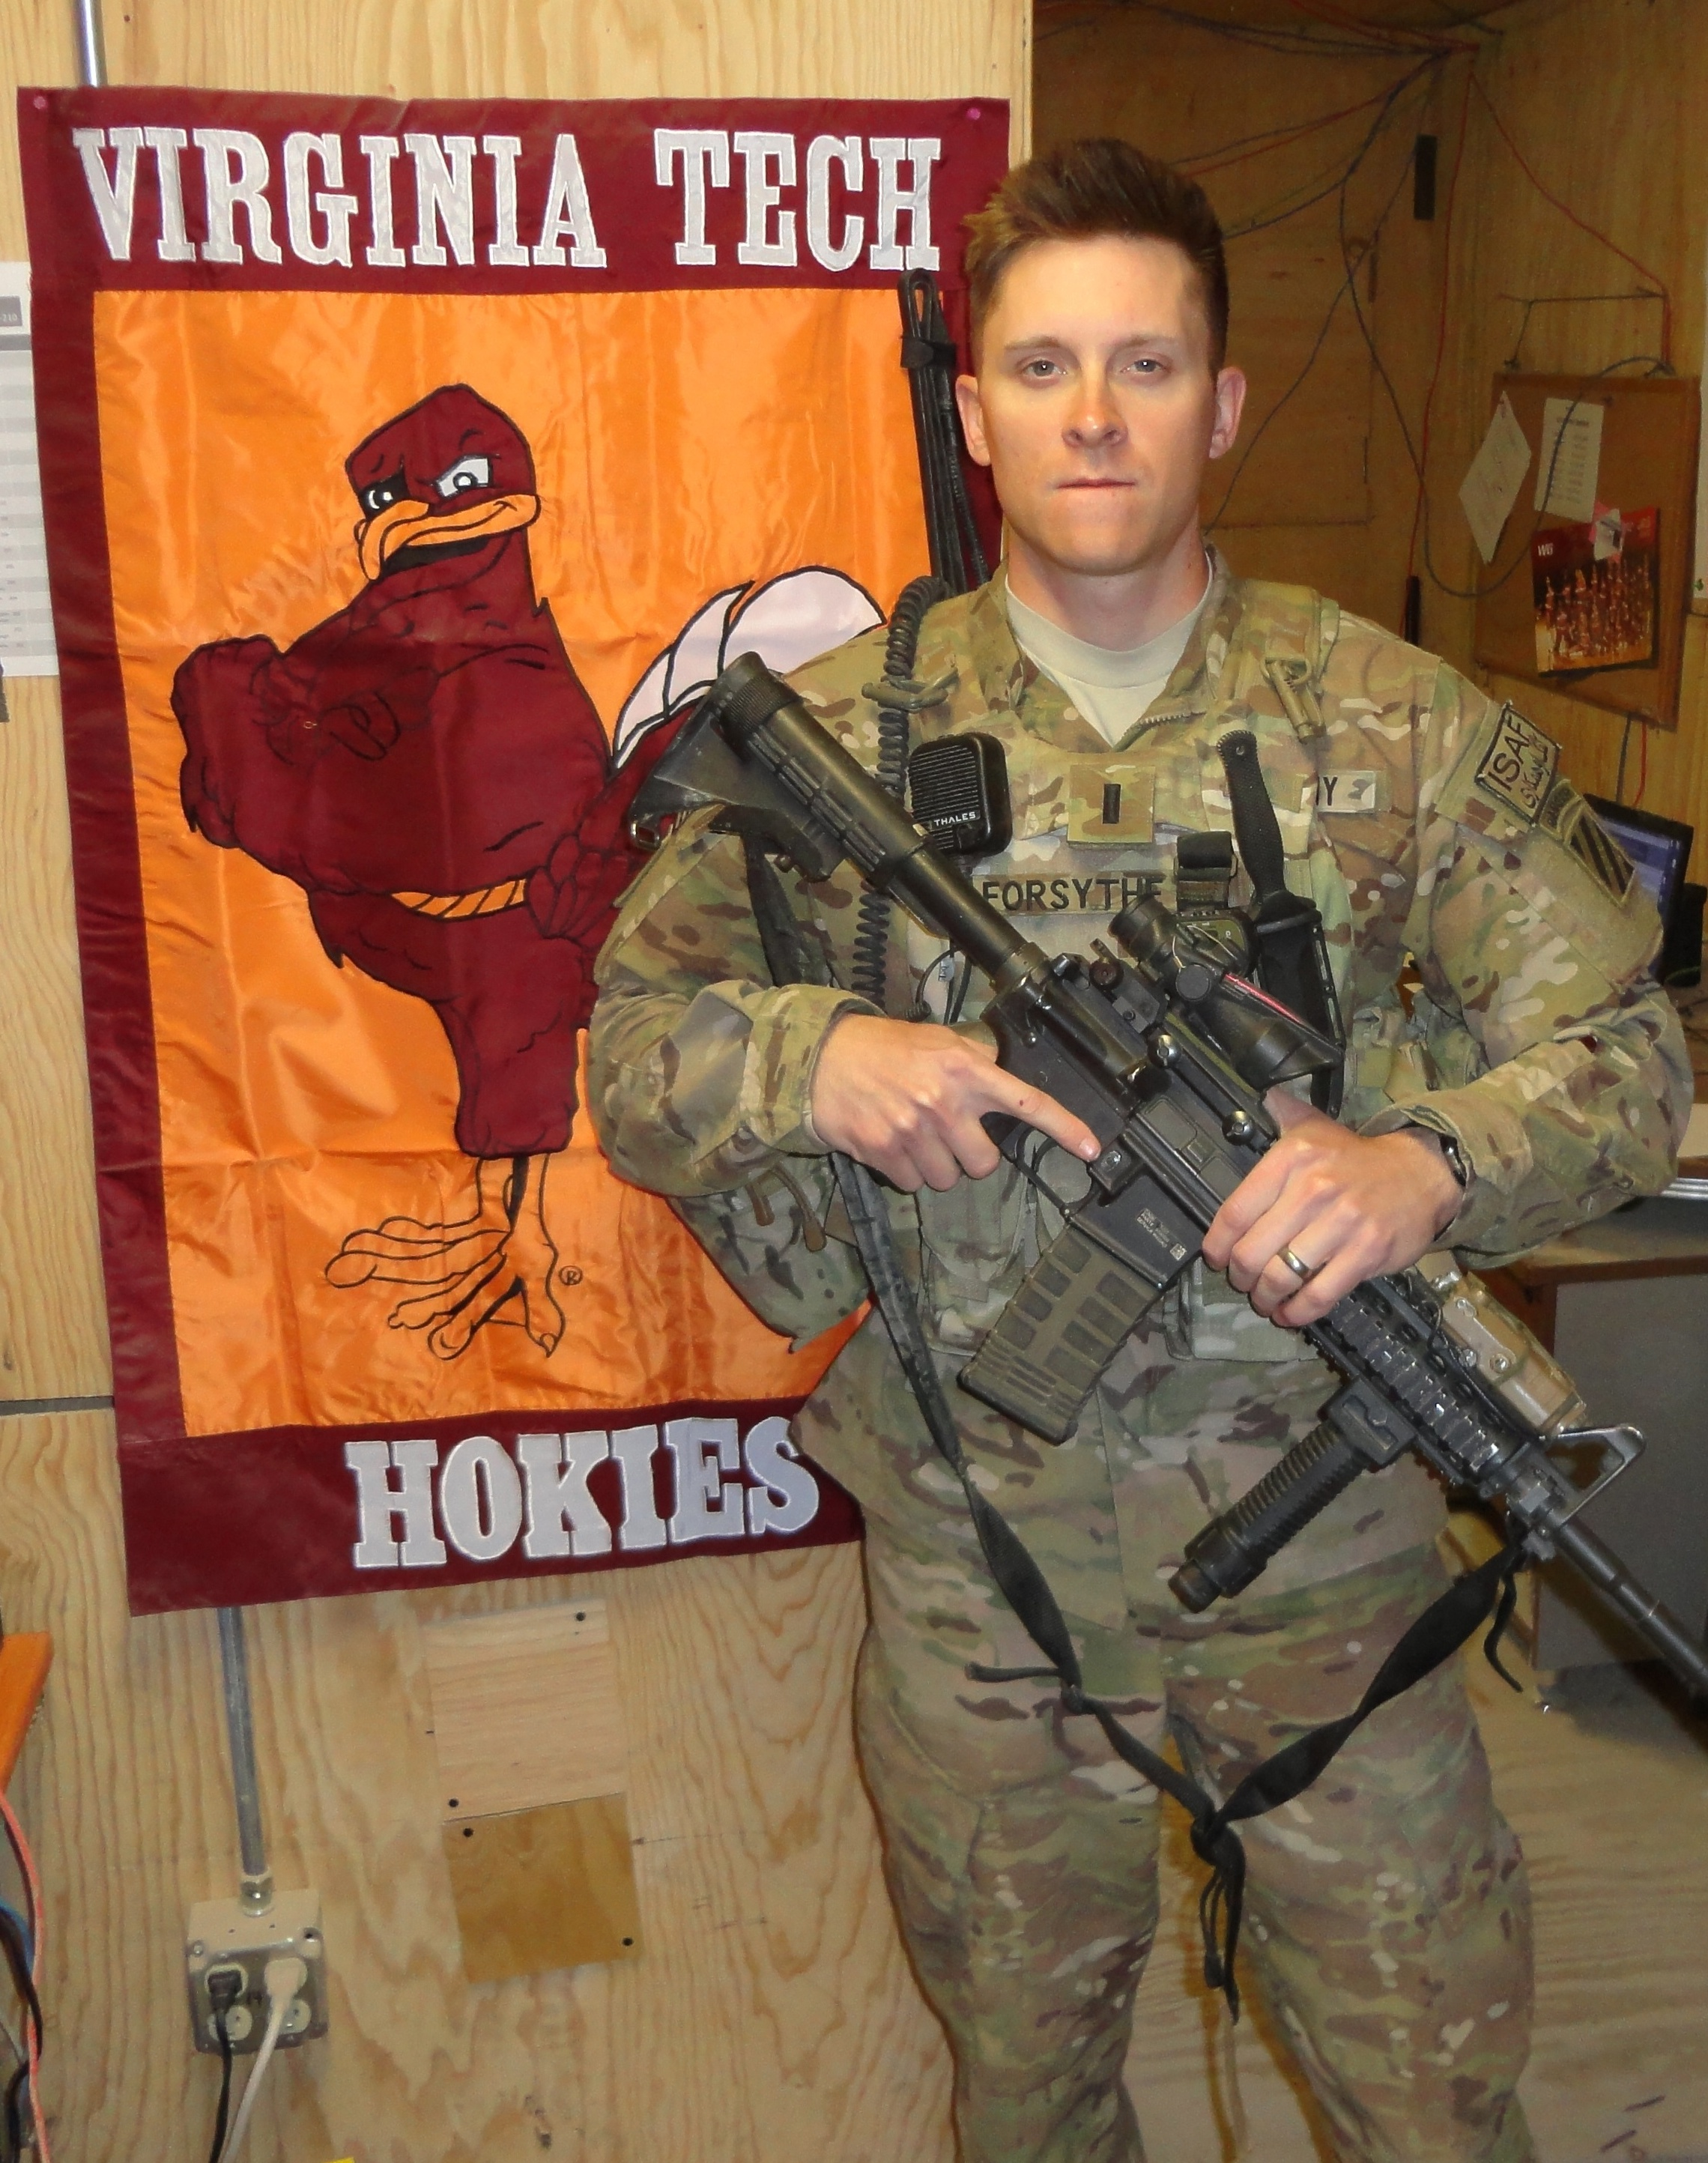 1st Lt. Scott Forsythe, U.S. Army, Virginia Tech Corps of Cadets Class of 2011 at his deployed location in Afghanistan